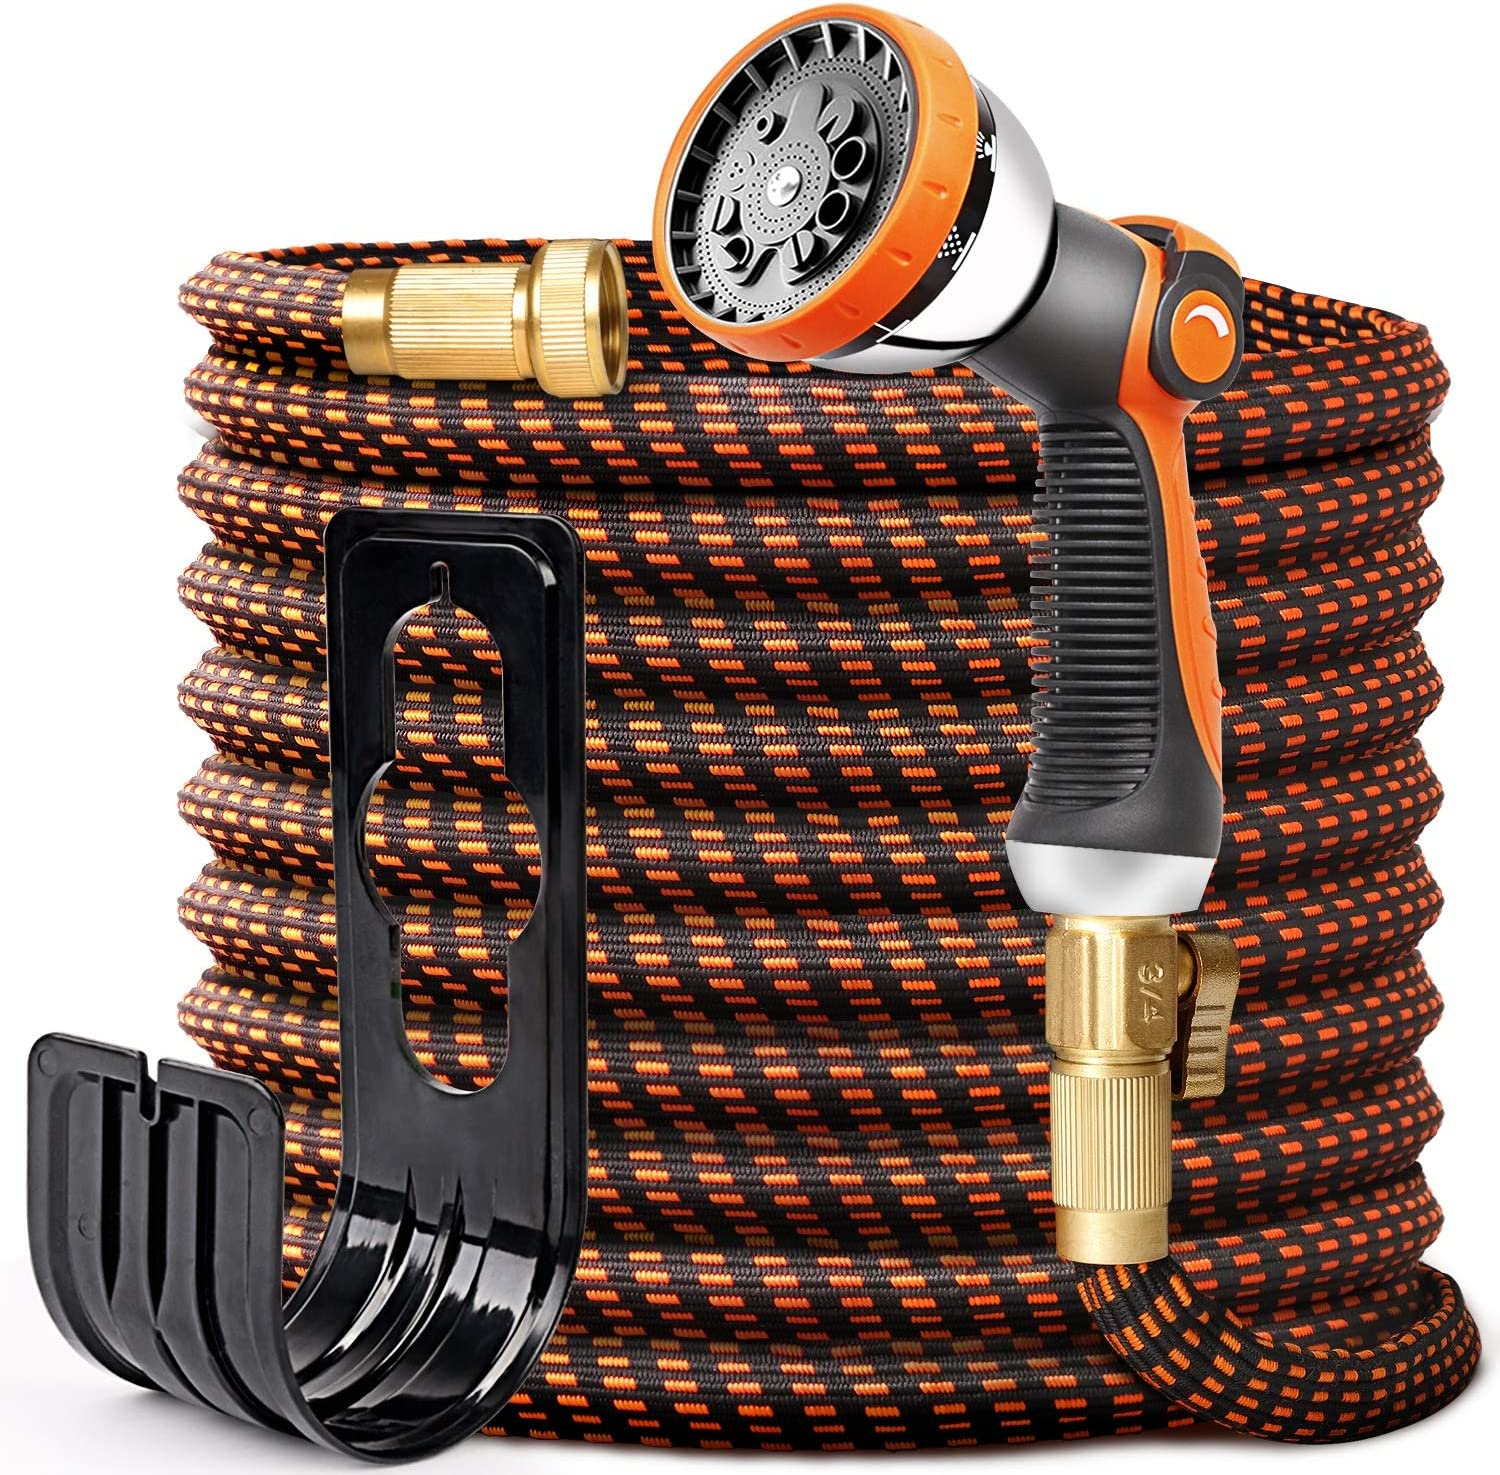 50ft Expandable Garden Hose - Kink Free Flexible Water Hoses with 9 Functions Nozzle, Expanding Hose Yard Hose Lightweight for Outdoor Garden Watering, Cleaning, Car Washing